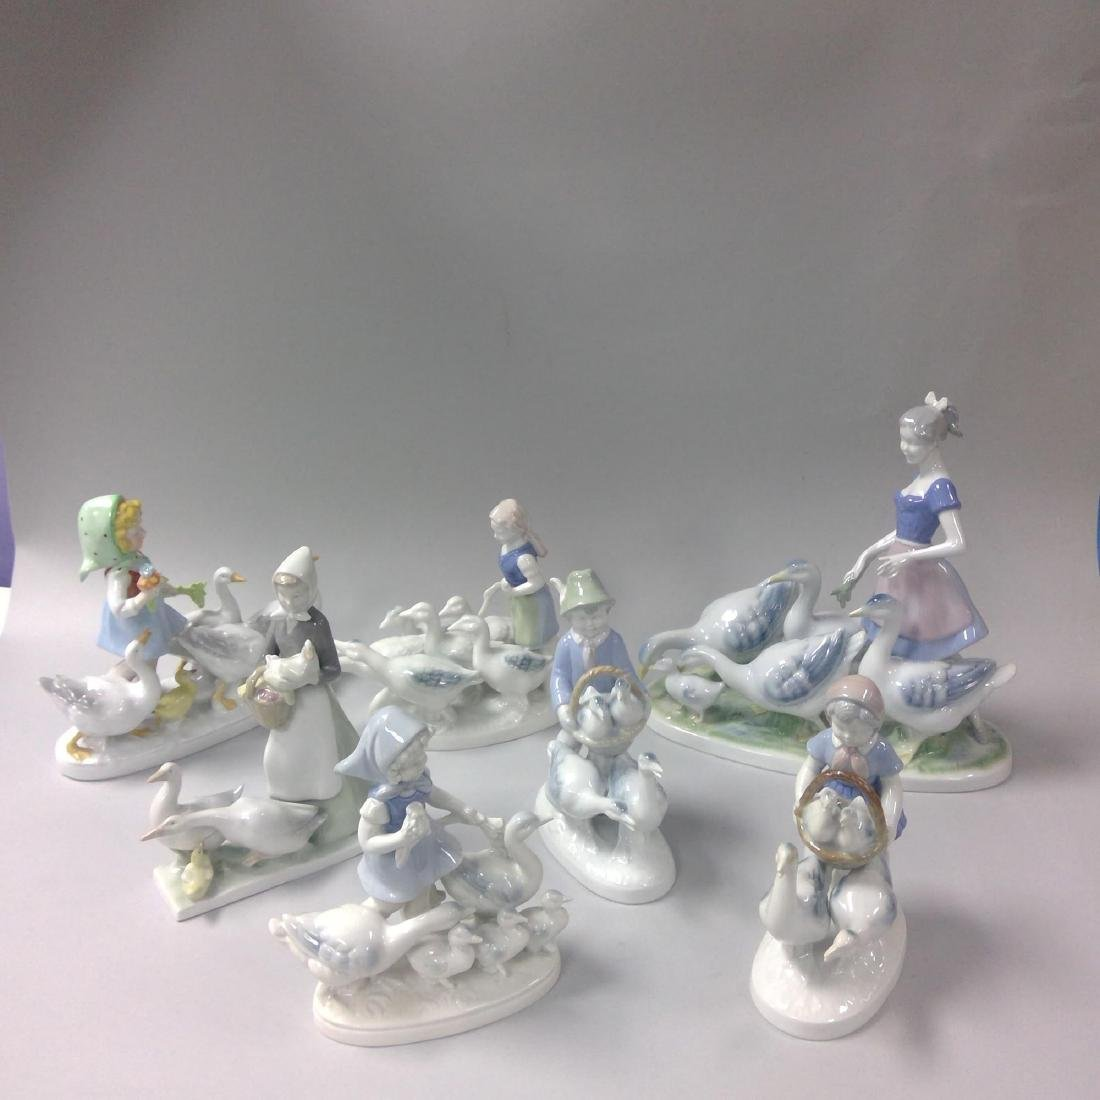 GROUP OF 7 GERMAN PORCELAIN FIGURINES